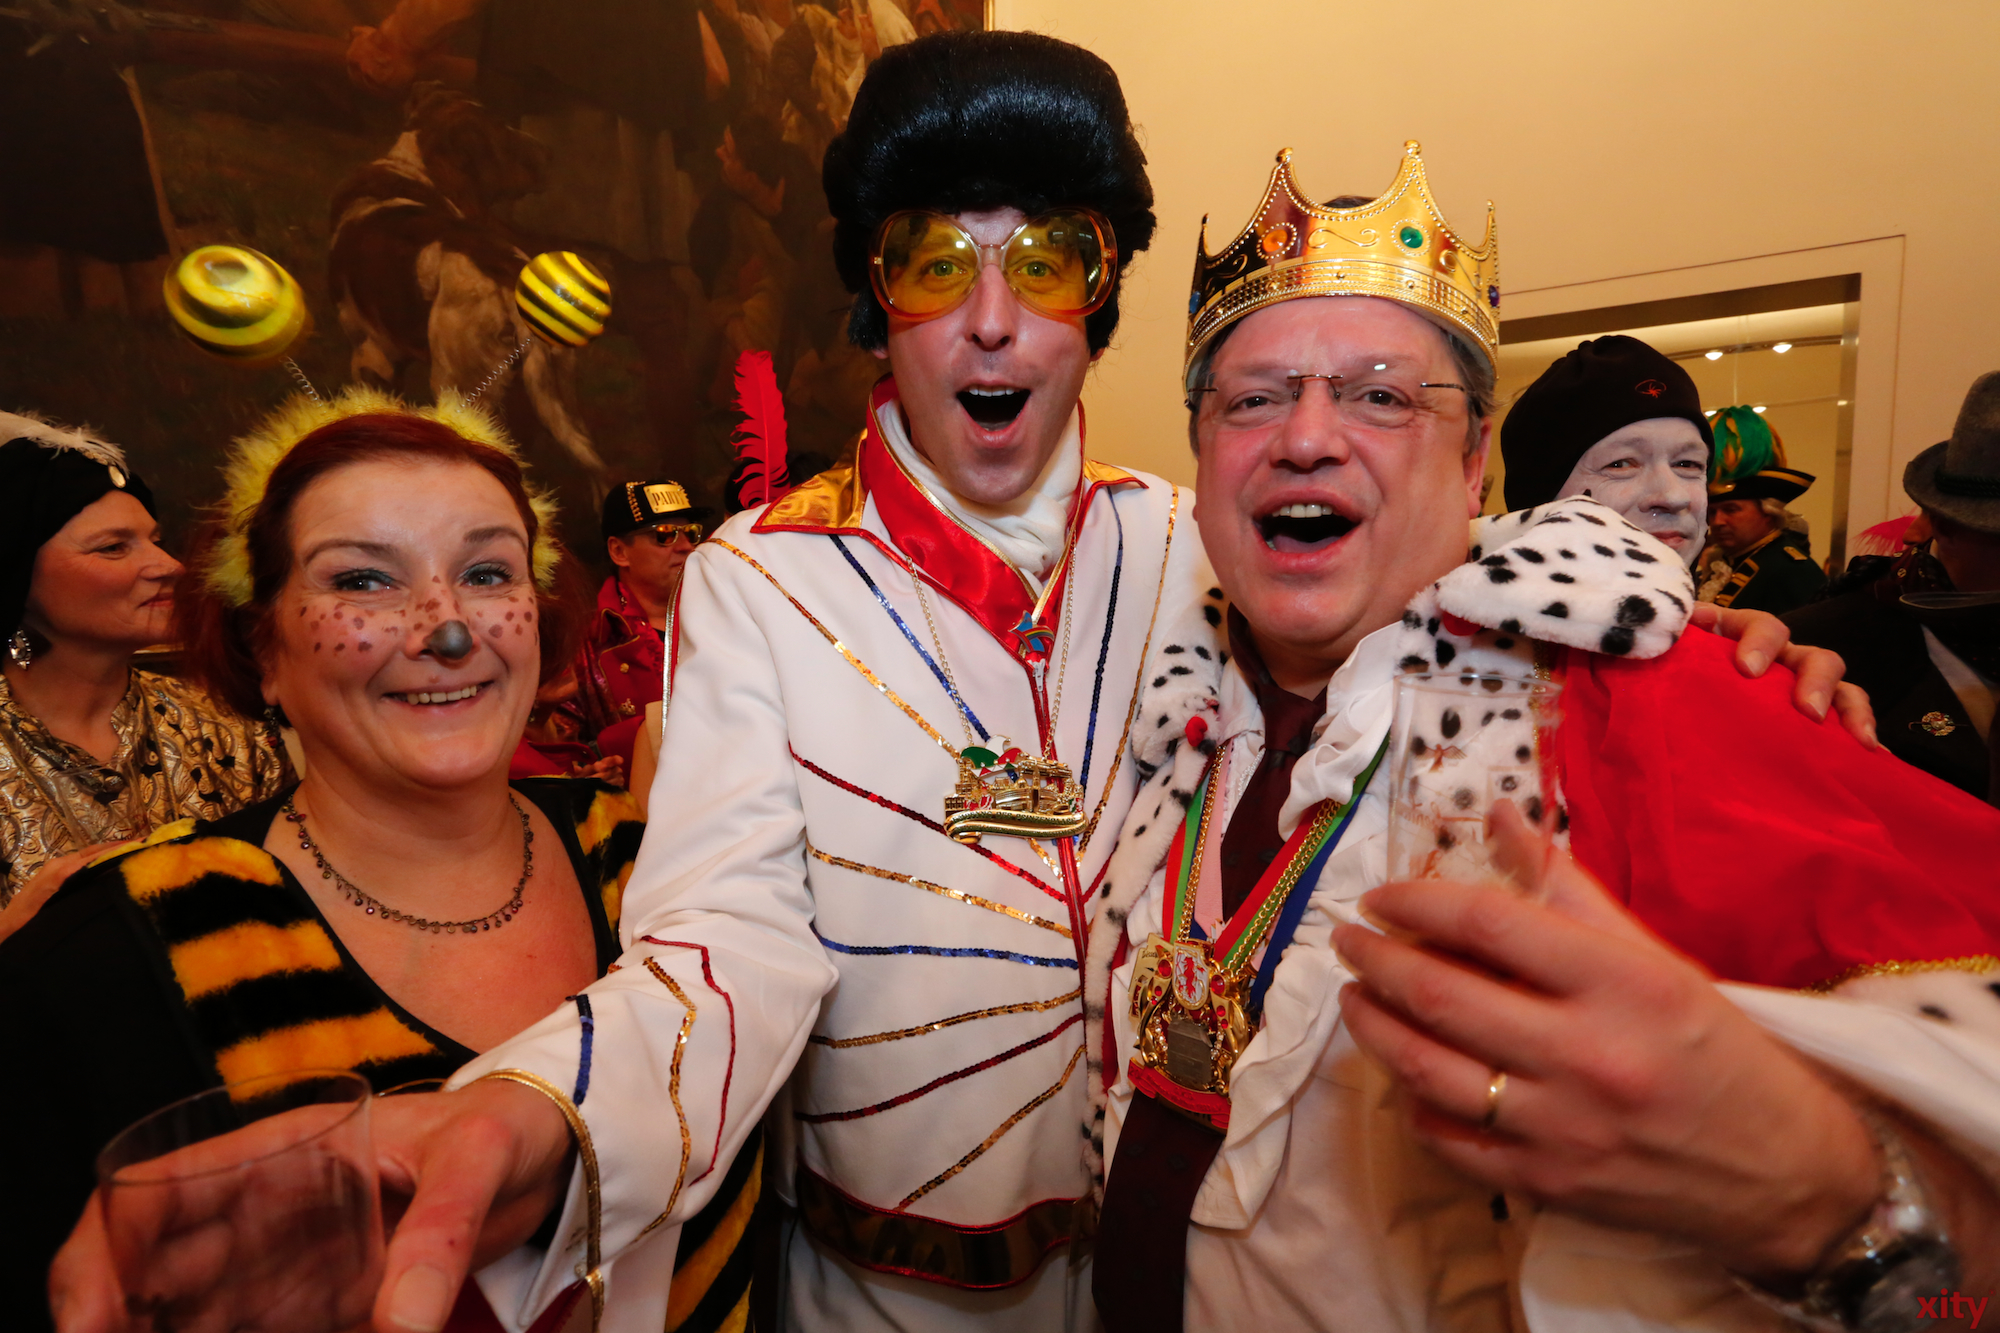 The SPD Leader of Düsseldorf, Andreas Rimkus came dressed as a king. (Photo: xity)